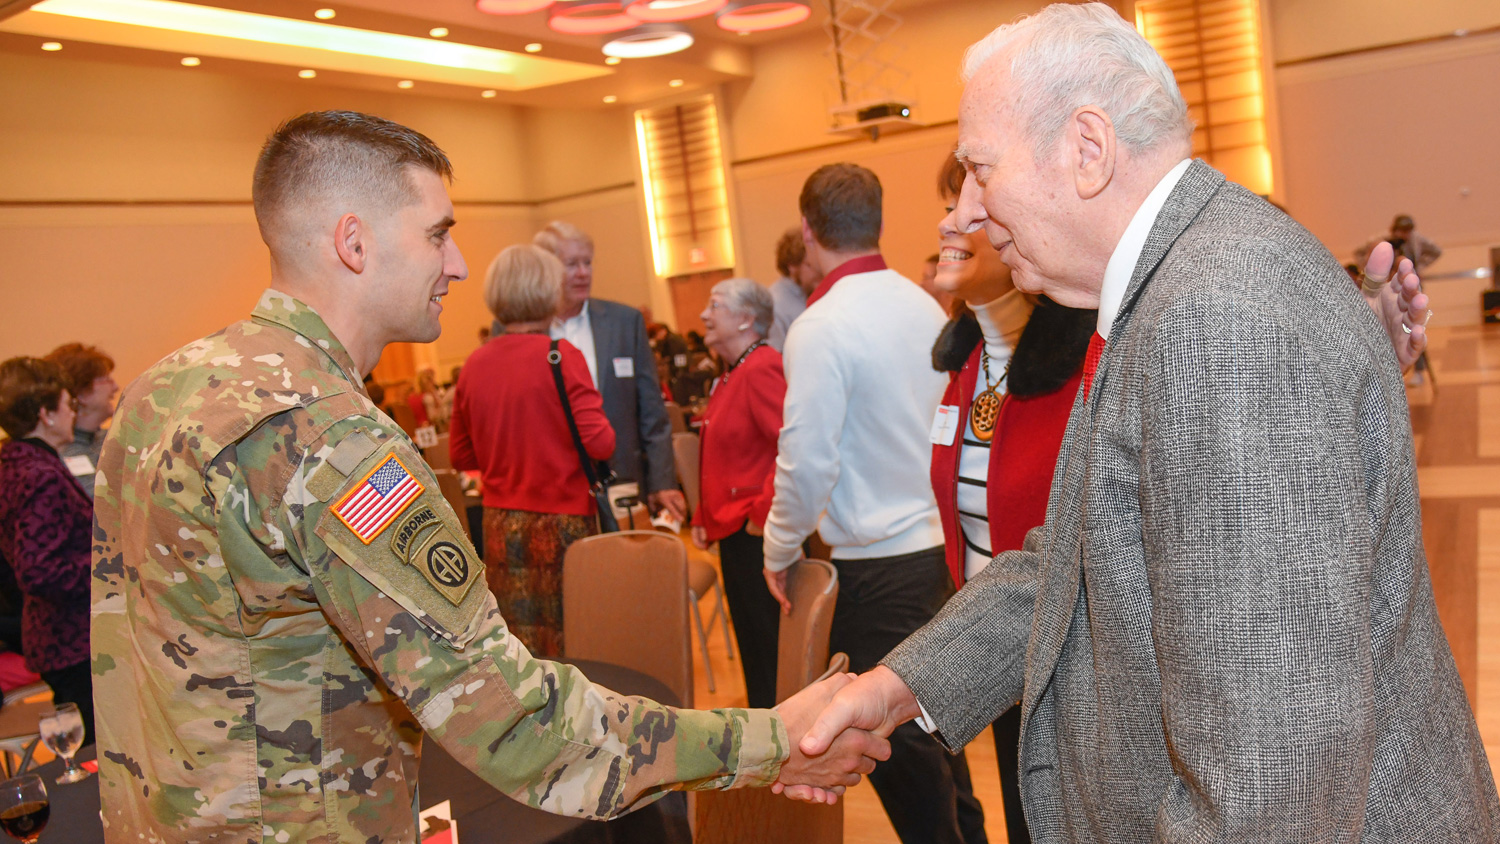 Student in Army uniform shaking professor's hand